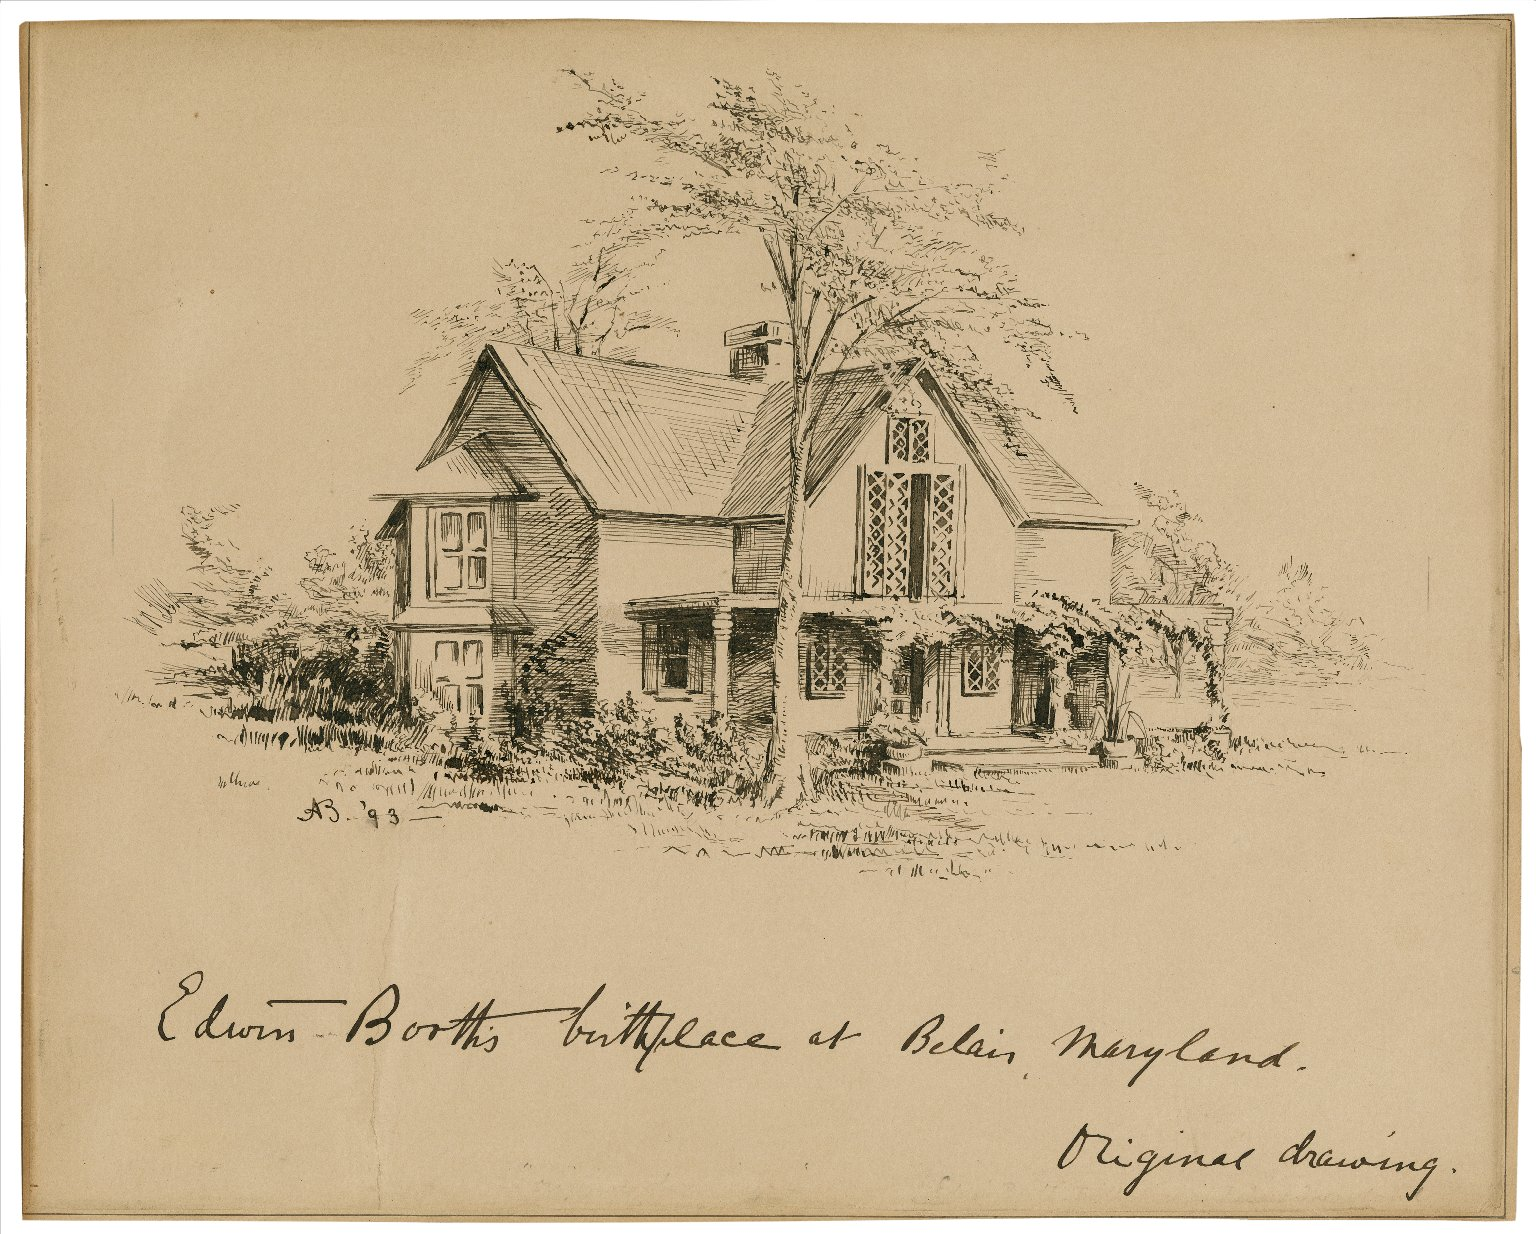 Edwin Booth's birthplace [sic] at Belair, Maryland [graphic] / [AB].